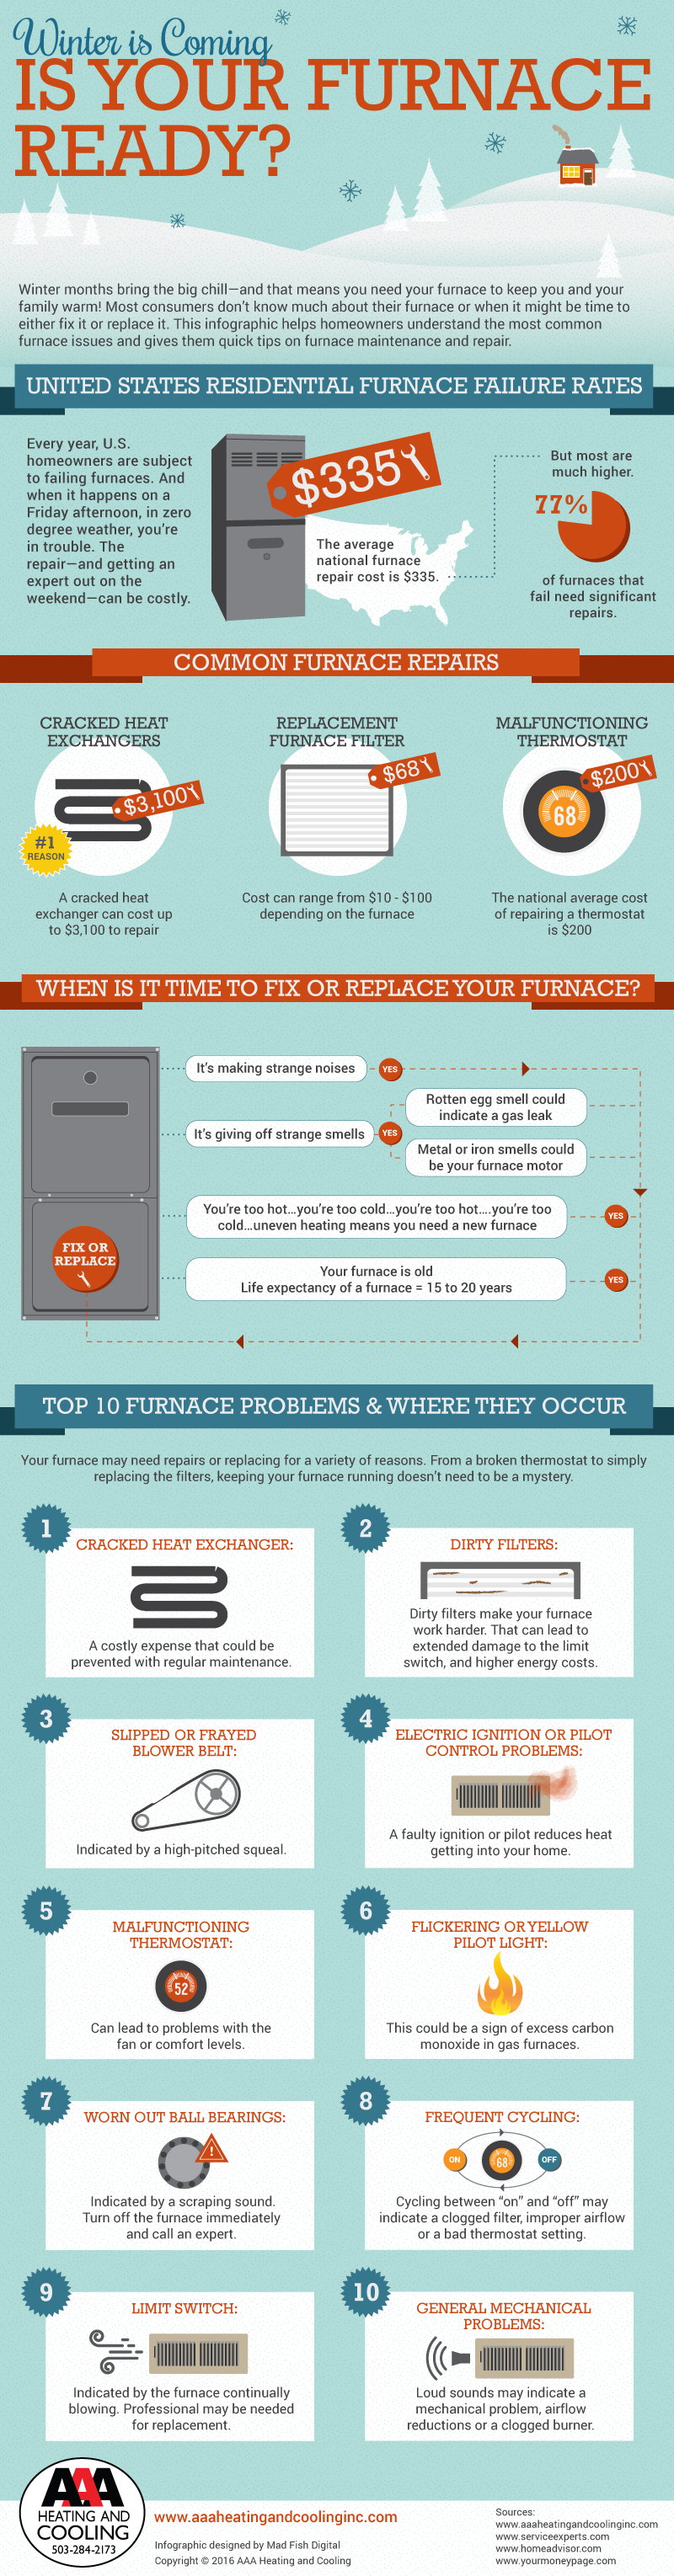 Infographic detailing furnace failure rates in the US and how homeowners can identify problem areas.